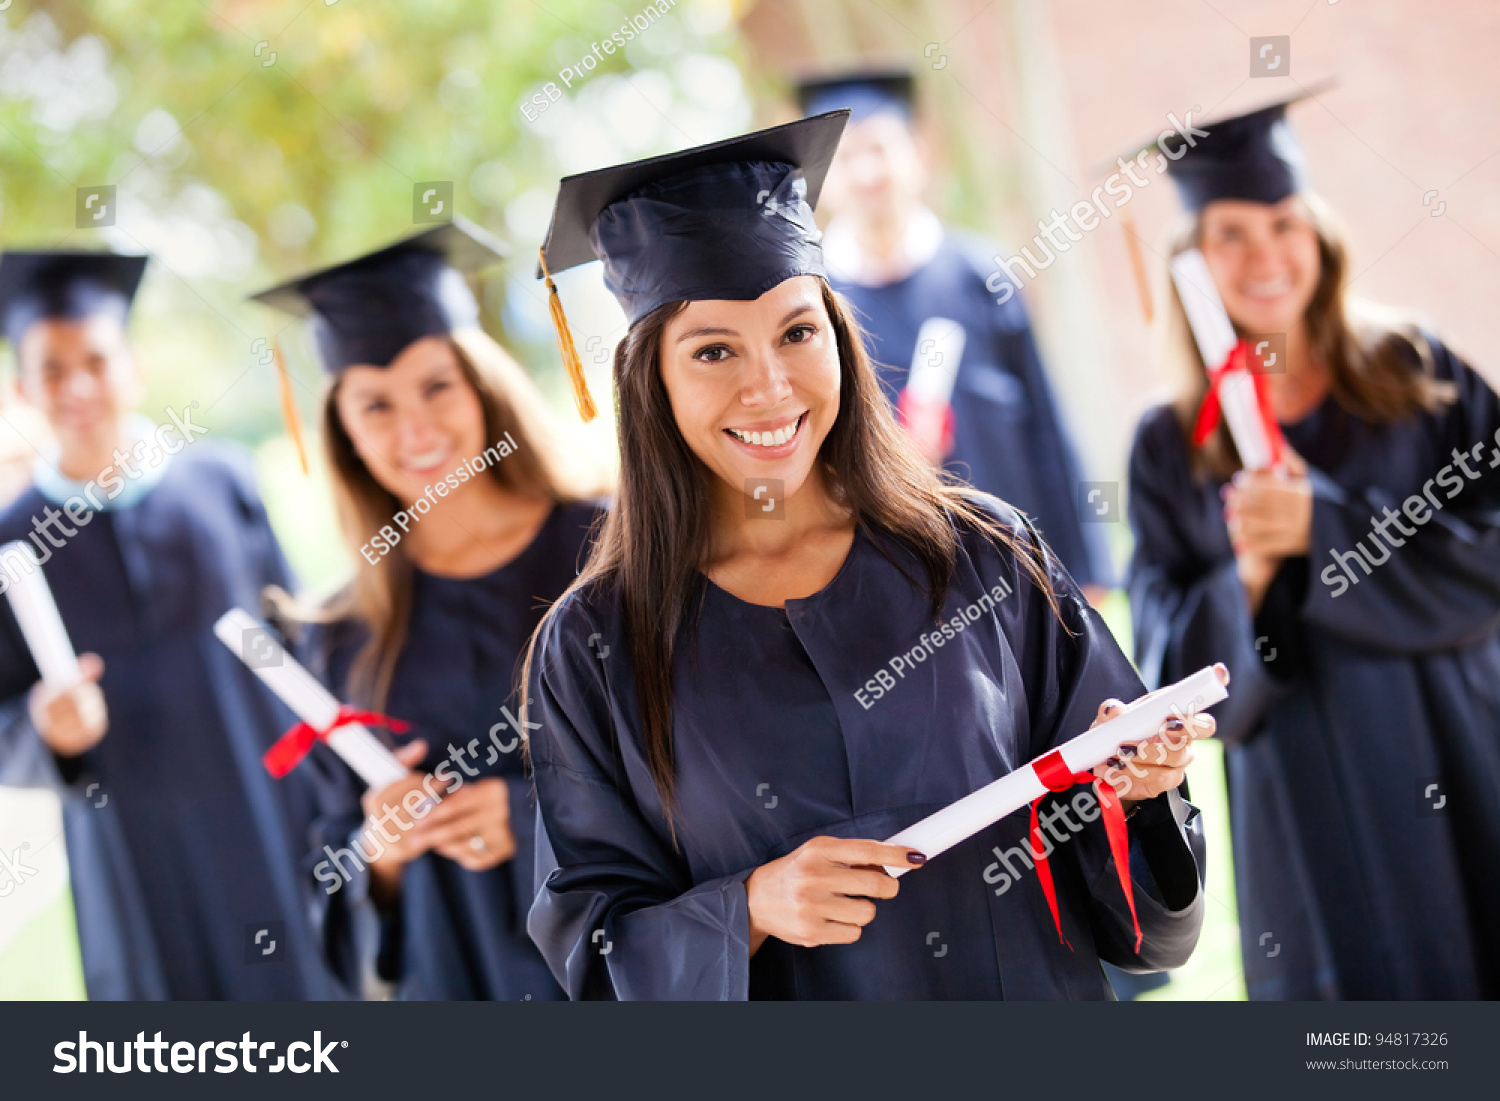 Group People Their Graduation Day Wearing Stock Photo 94817326 ...